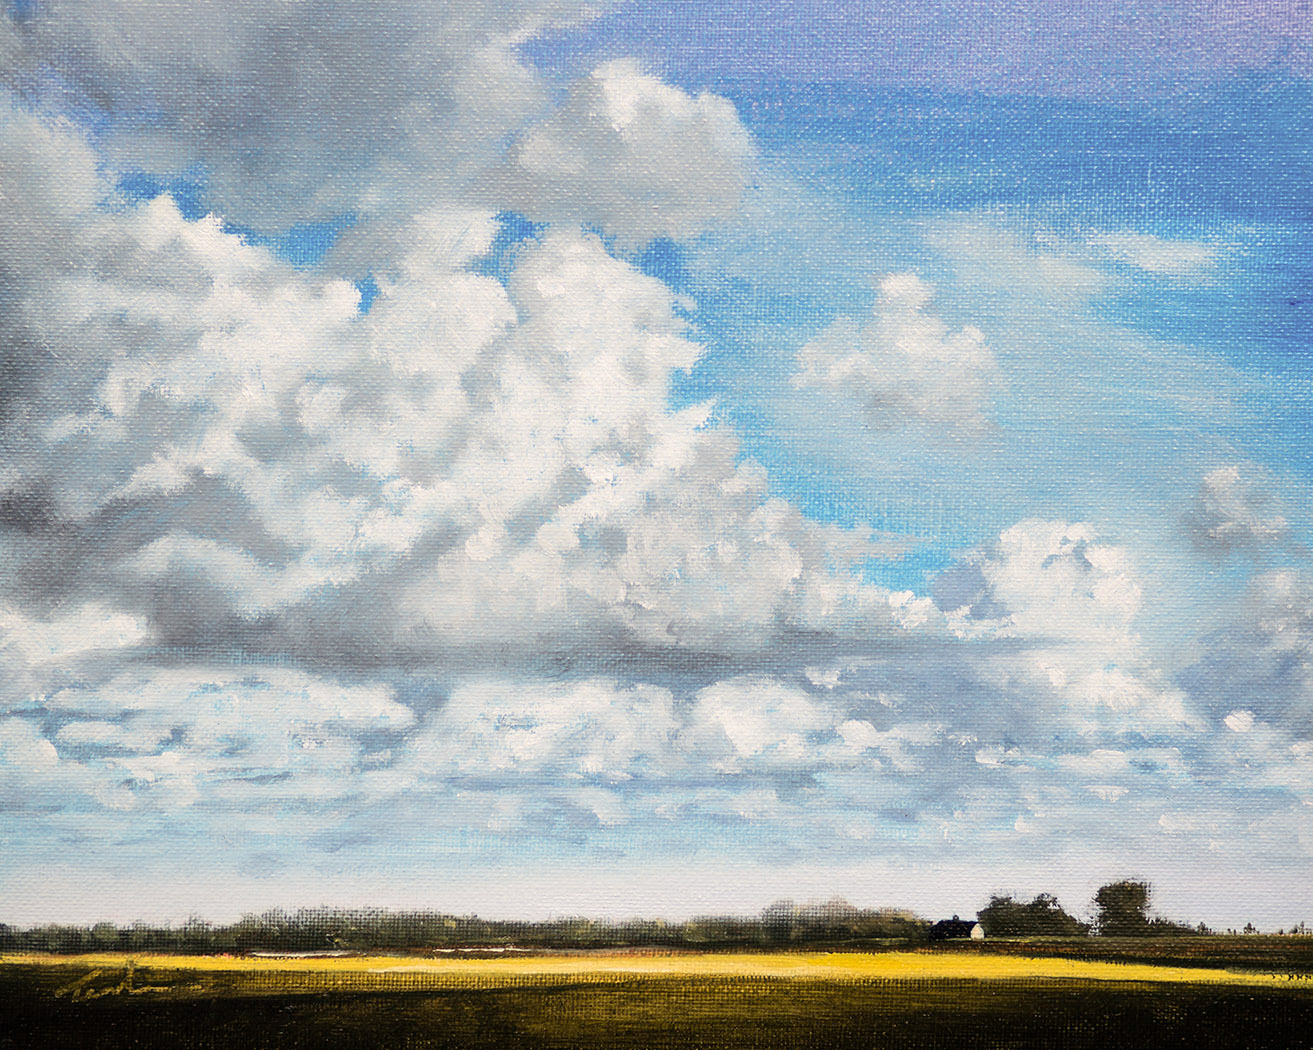 Fenland Sky over Maxey - Nick Tearle Fenland Artist